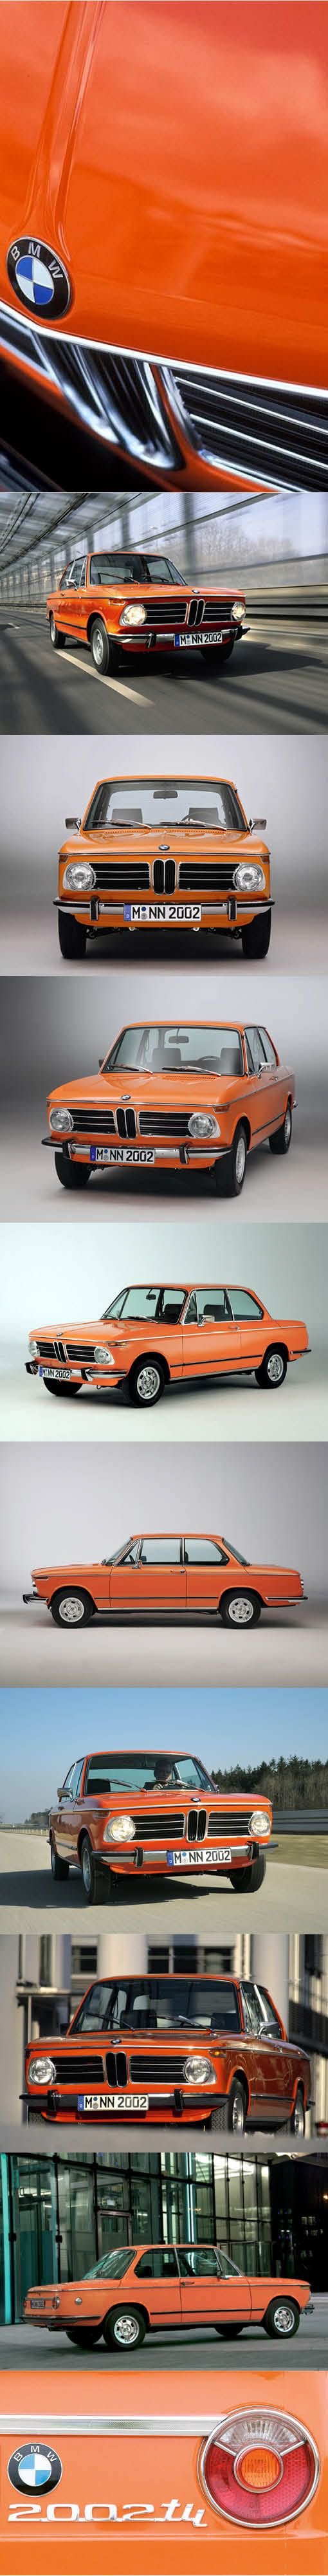 1968 BMW 2002 / Germany / orange